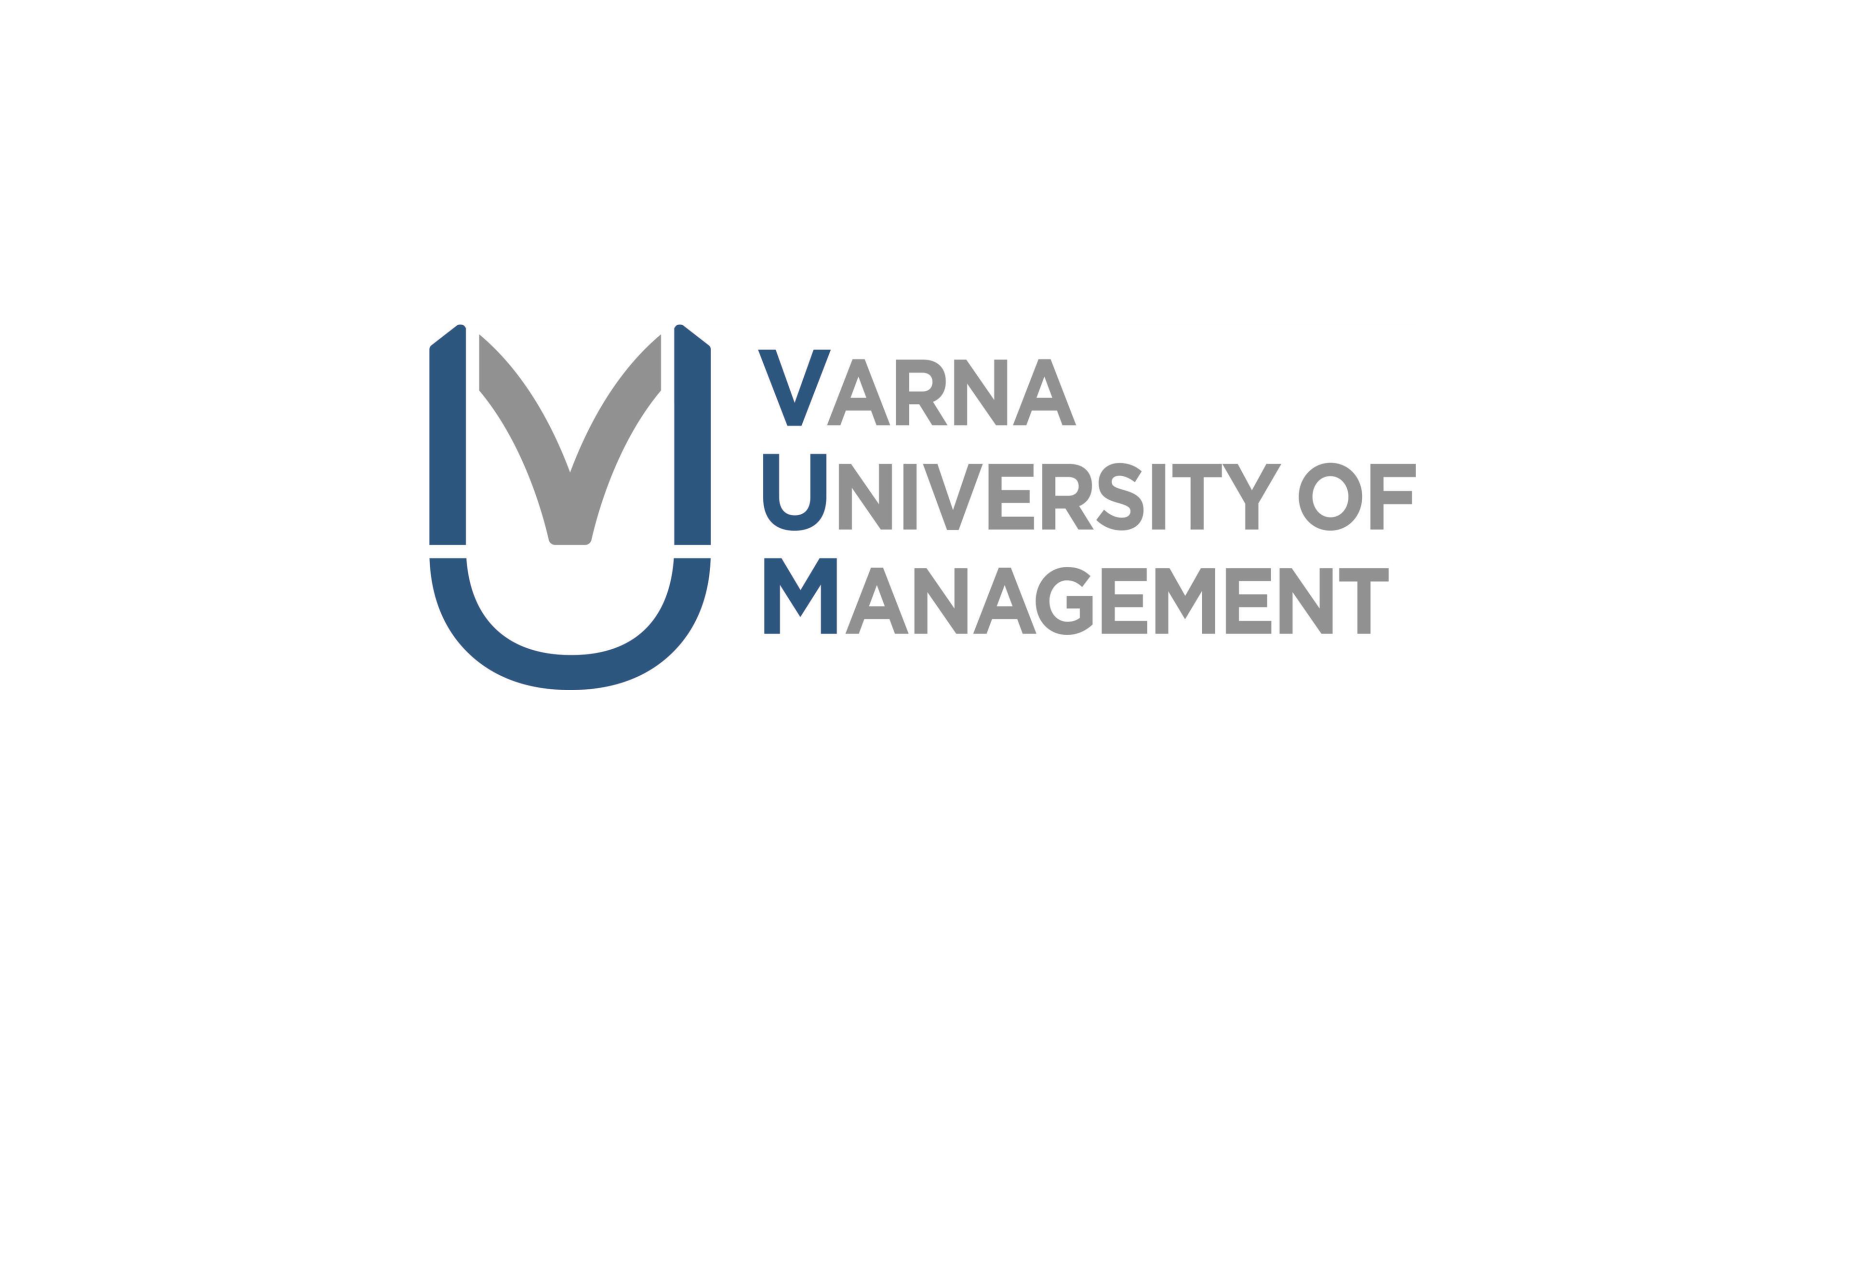 Varna University of Management (BG)